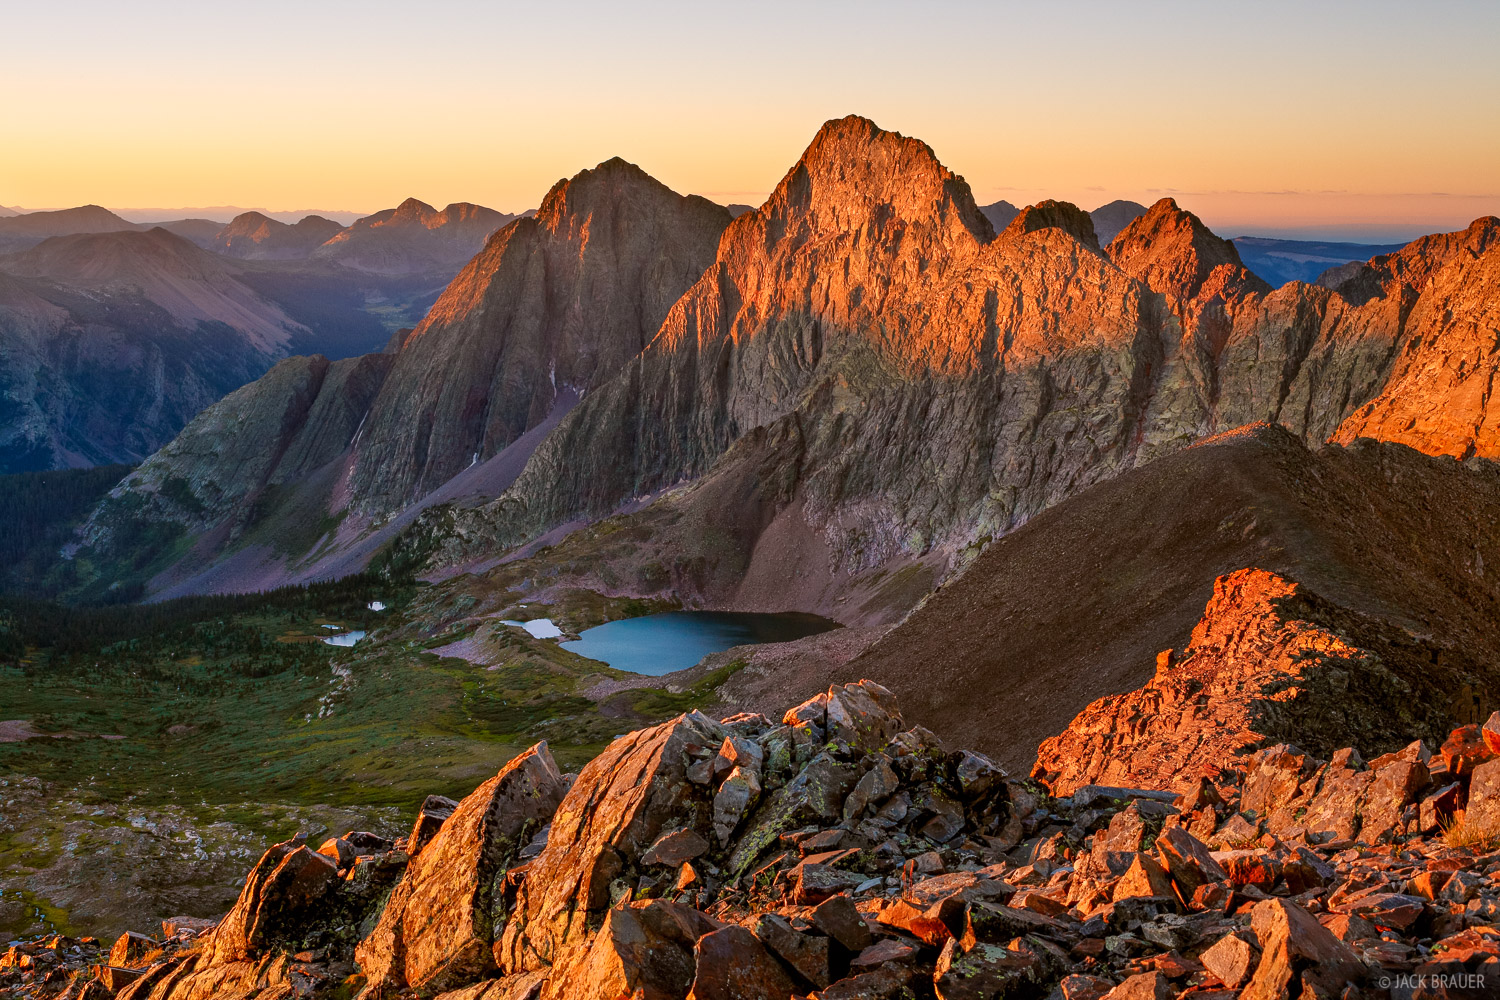 Sunrise alpenglow light on Storm King Peak (13,752 ft.), as seen from the summit of Peak Three, a seldom hiked peak offering...